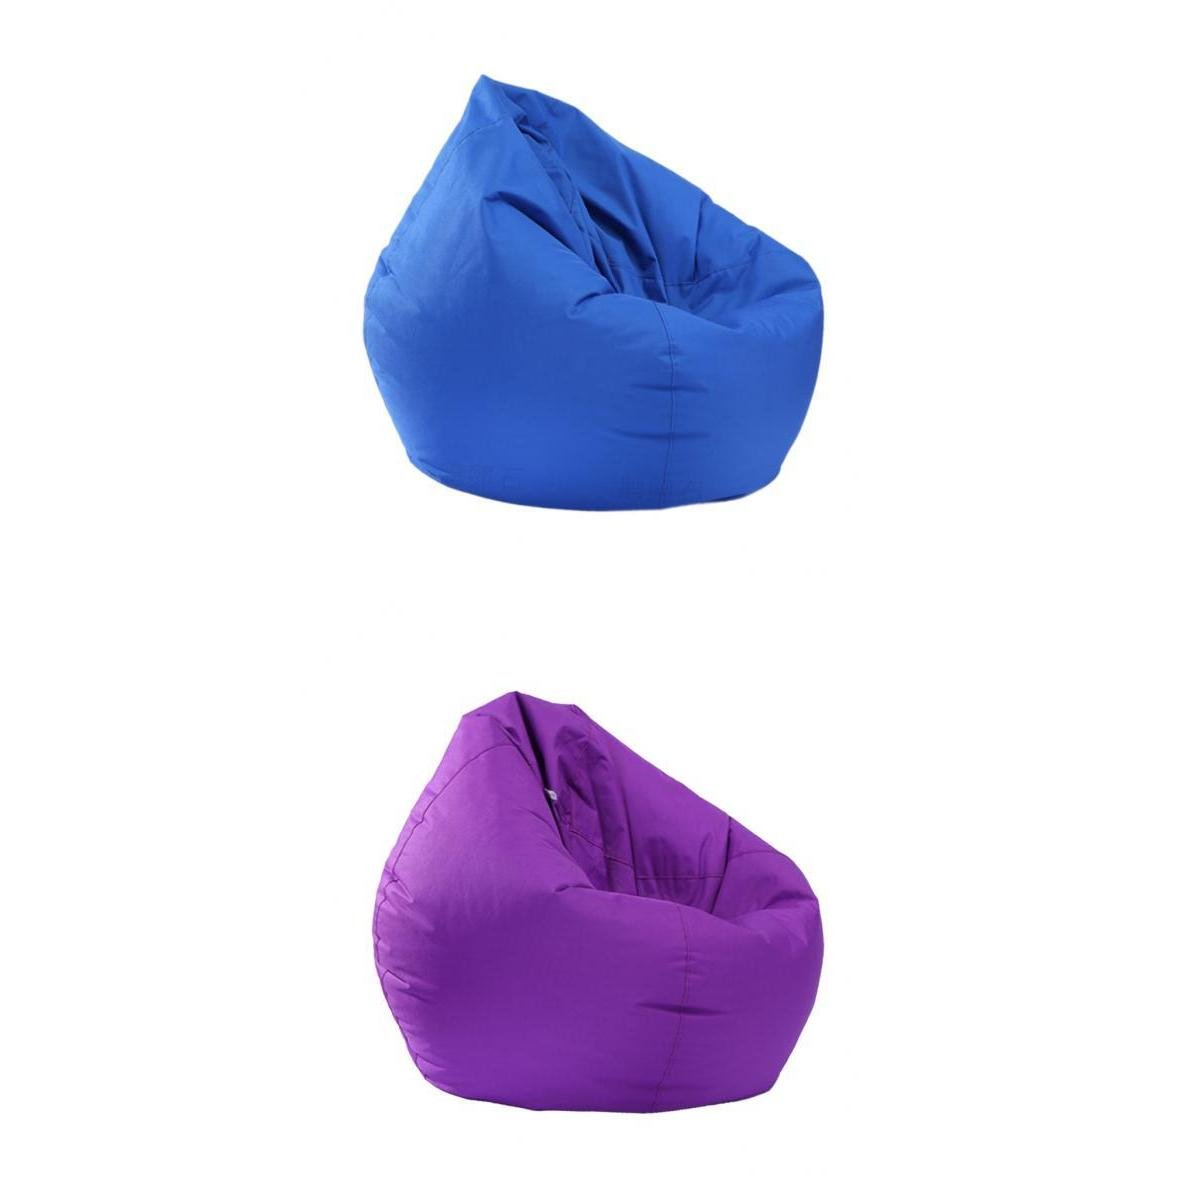 Wondrous Amazon Com Fityle 2 Pieces Royal Blue Purple Bean Bag Theyellowbook Wood Chair Design Ideas Theyellowbookinfo